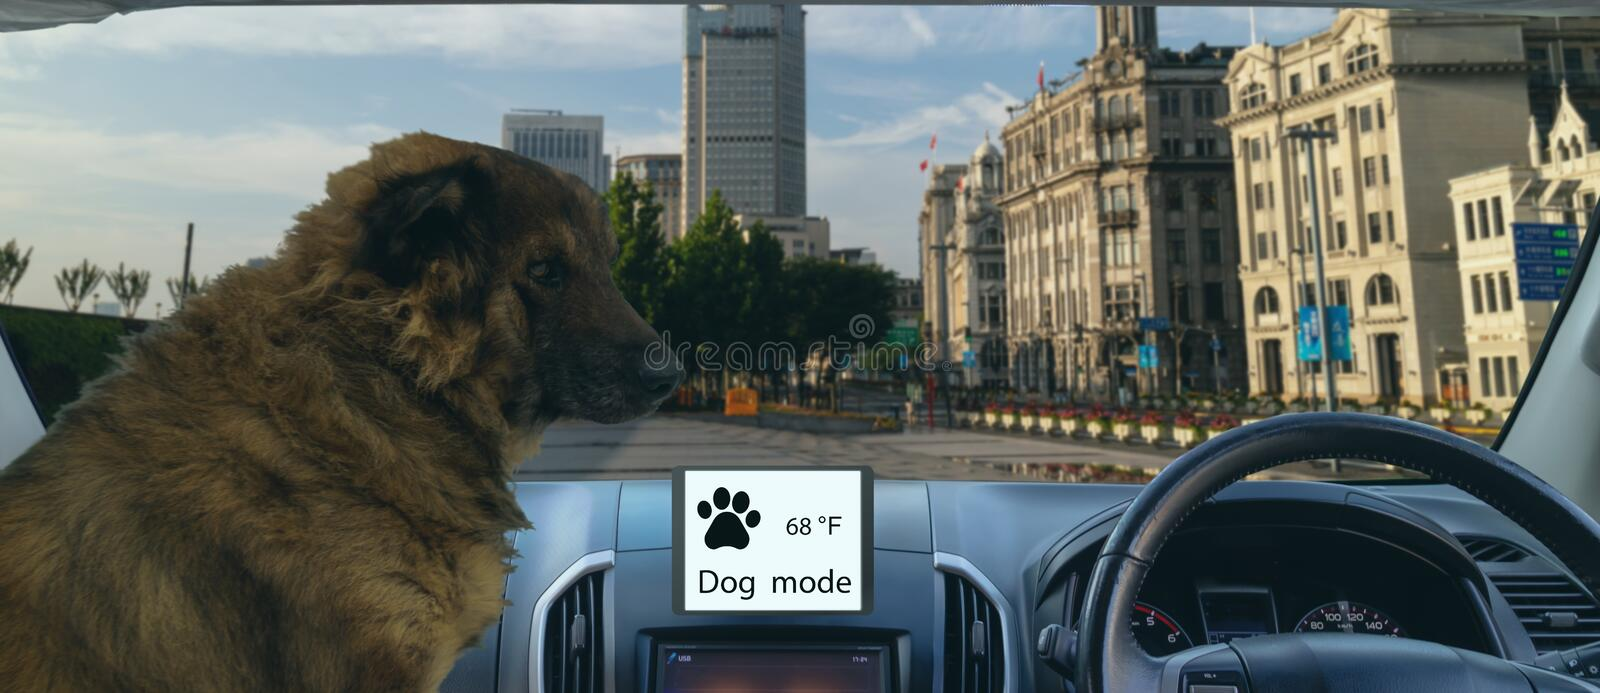 Smart autonomous car use dog and sentry mode to protect or guard the car and pet In addition to keeping the climate control on, th royalty free stock image